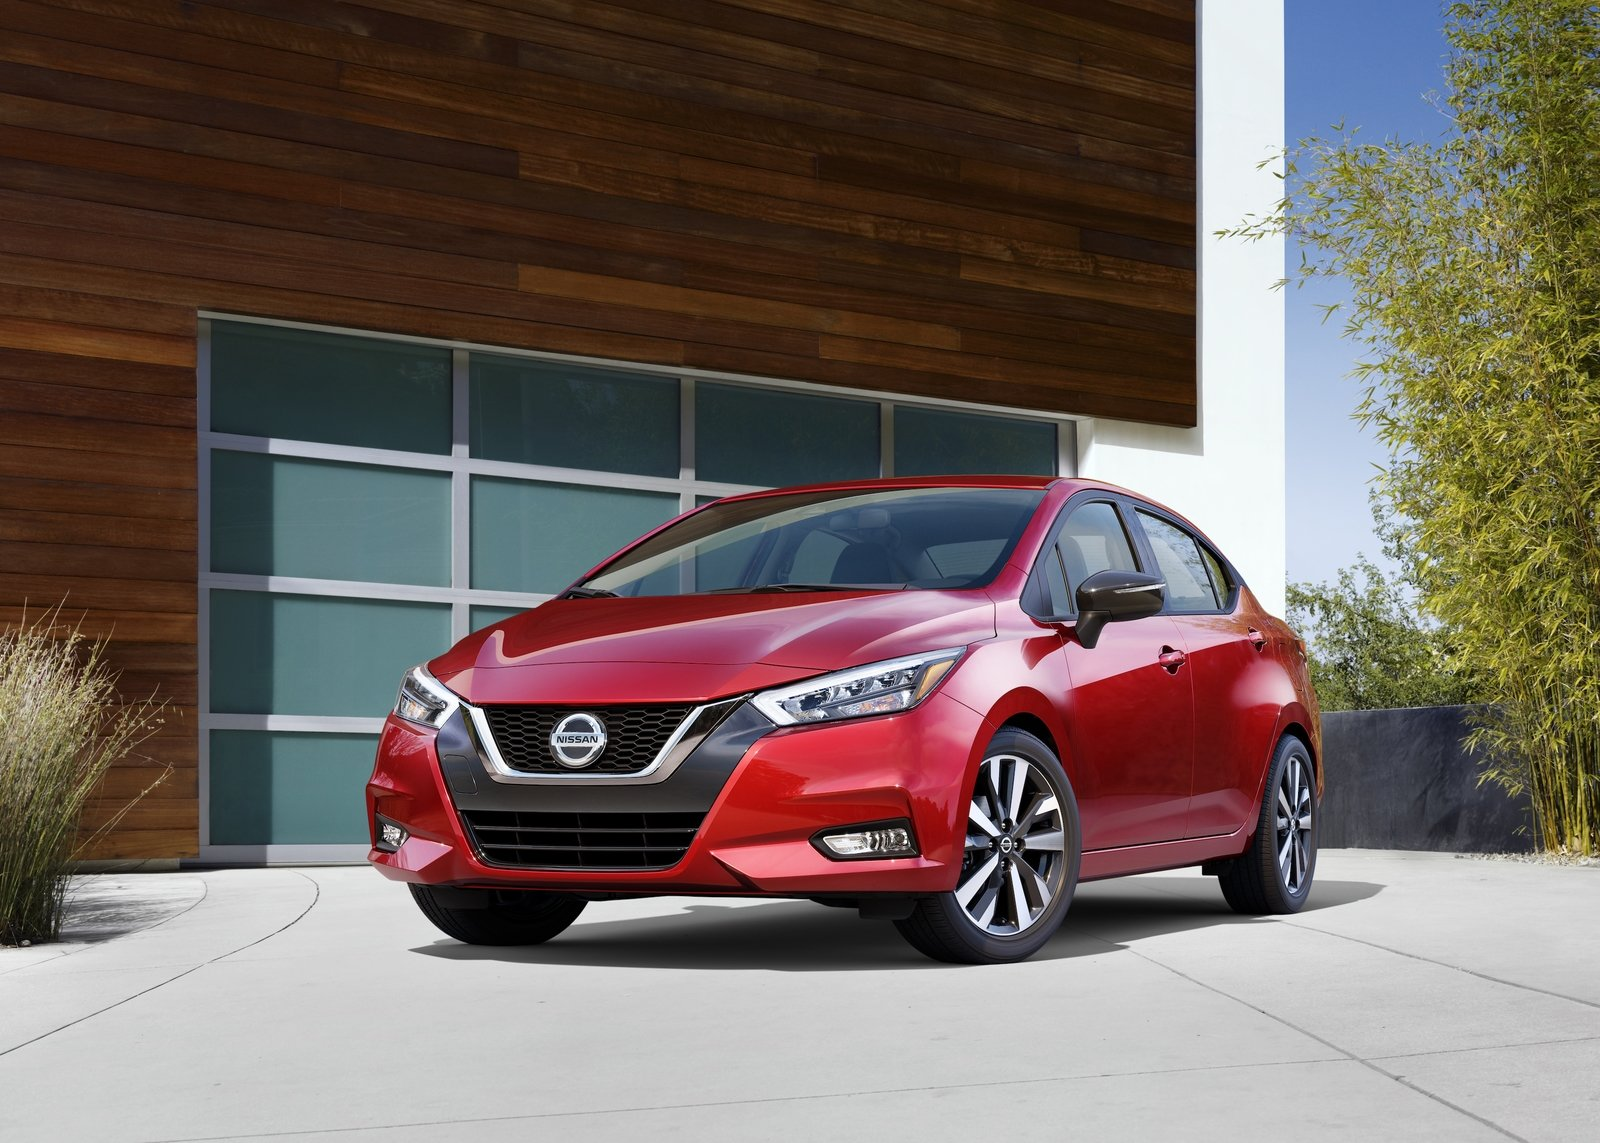 2020 nissan versa unveiled with standard safety tech